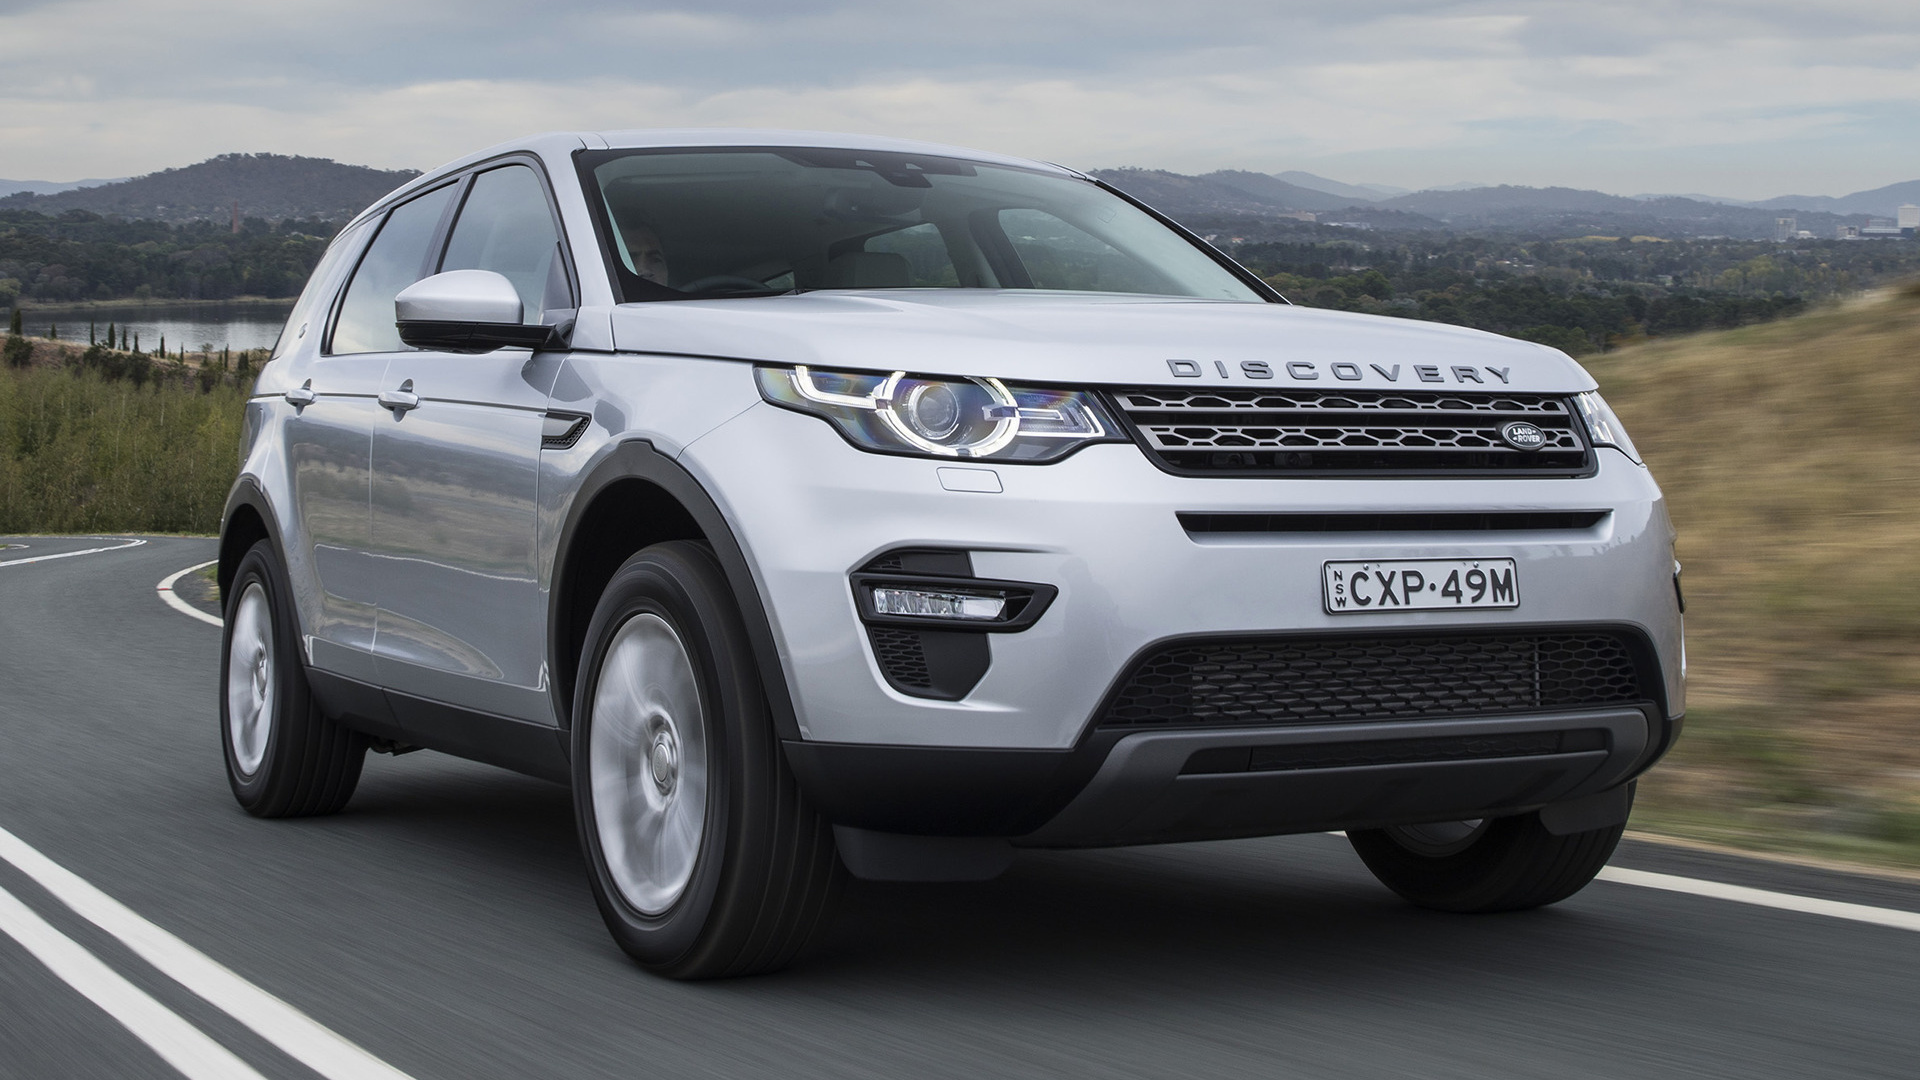 Wallpaper Land Rover Discovery Sport: 2015 Land Rover Discovery Sport SE (AU)